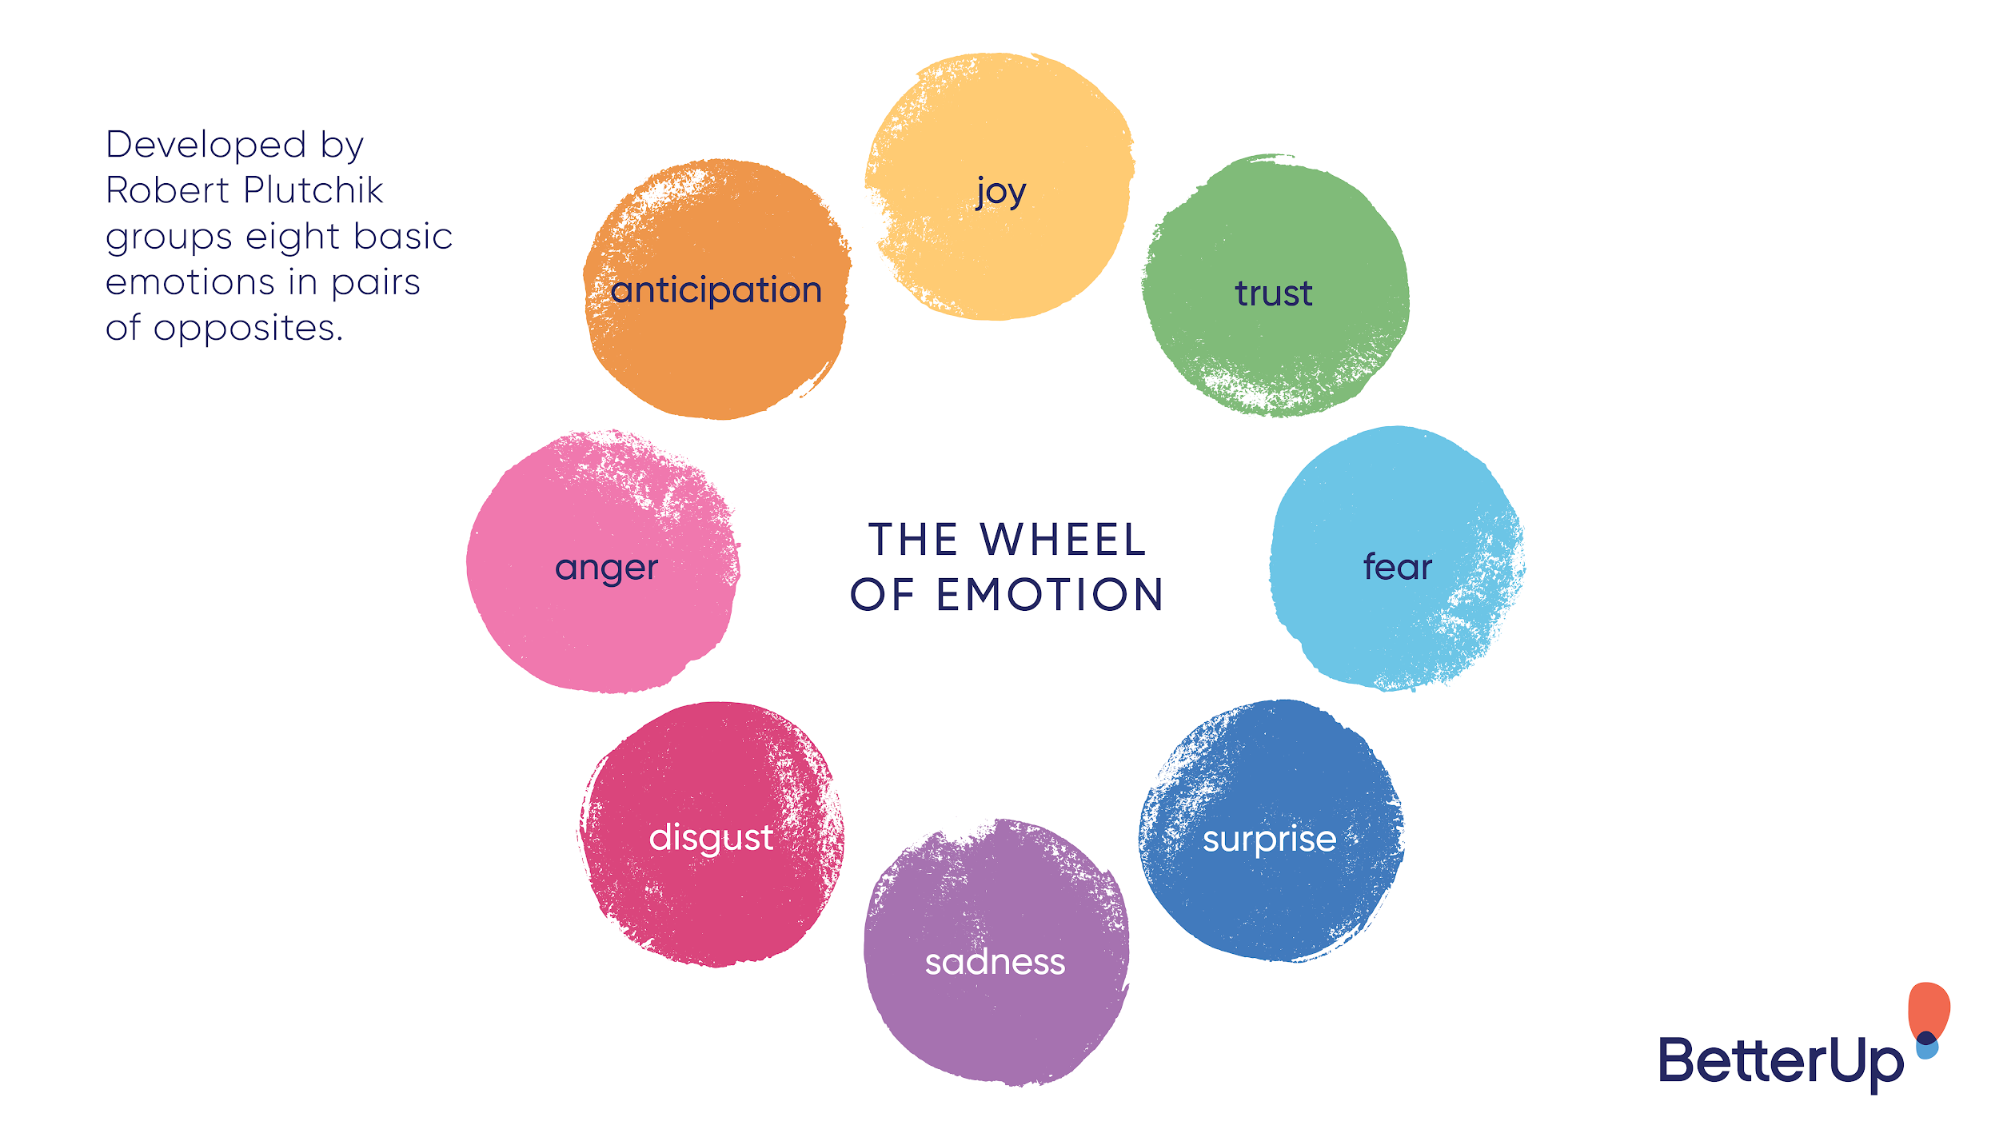 the wheel of emotion - how to deal with disappointment